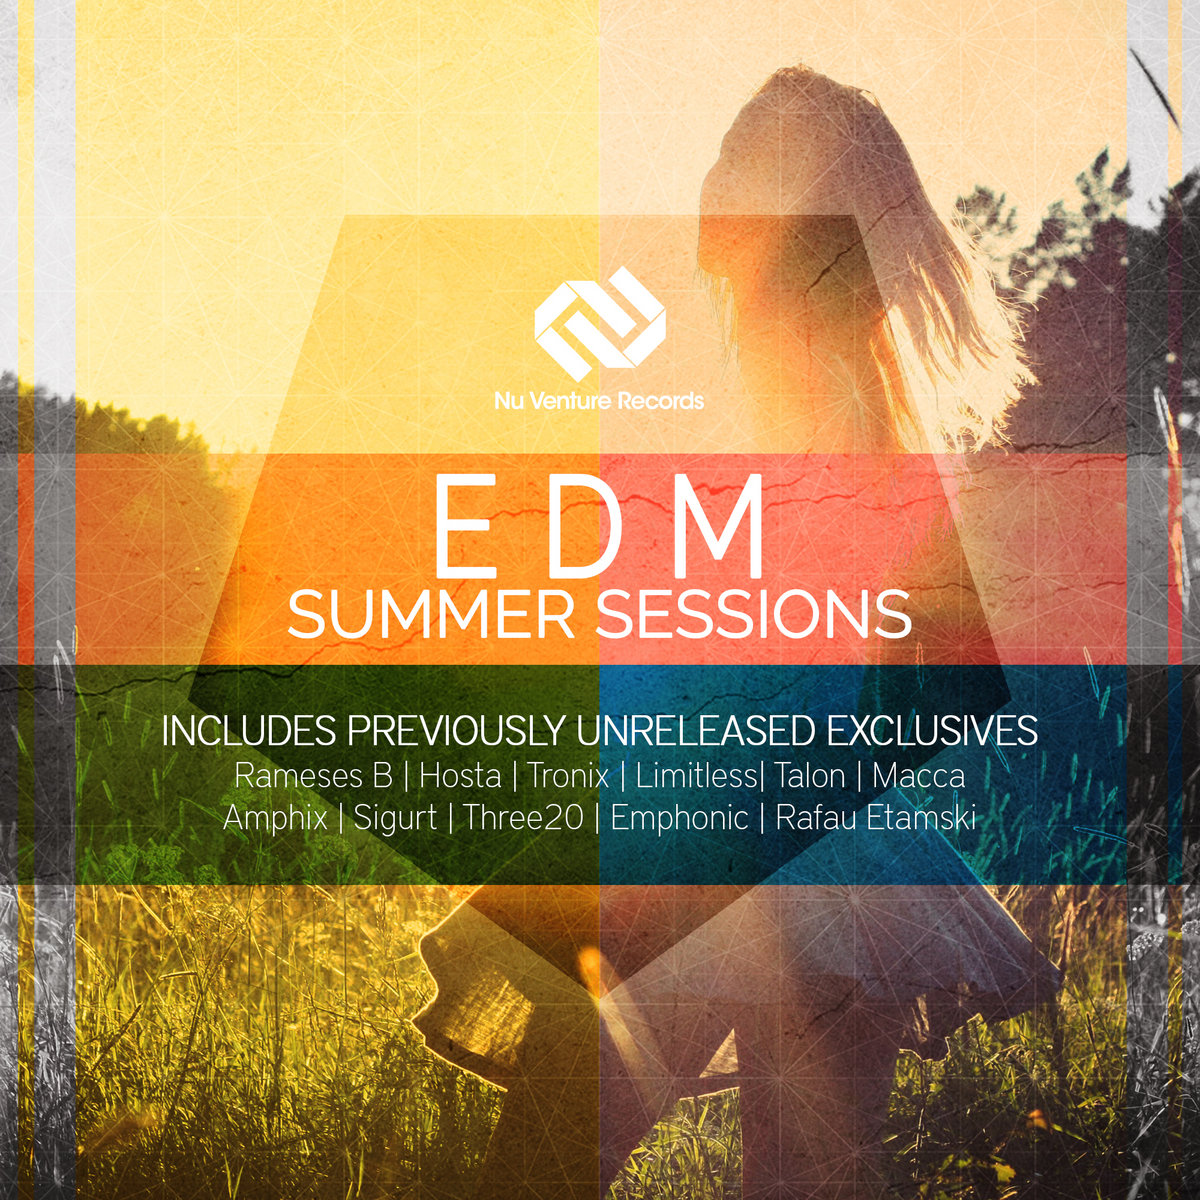 E D M Summer Sessions | 17 Tracks for ONLY £3 50 | Nu Venture Records